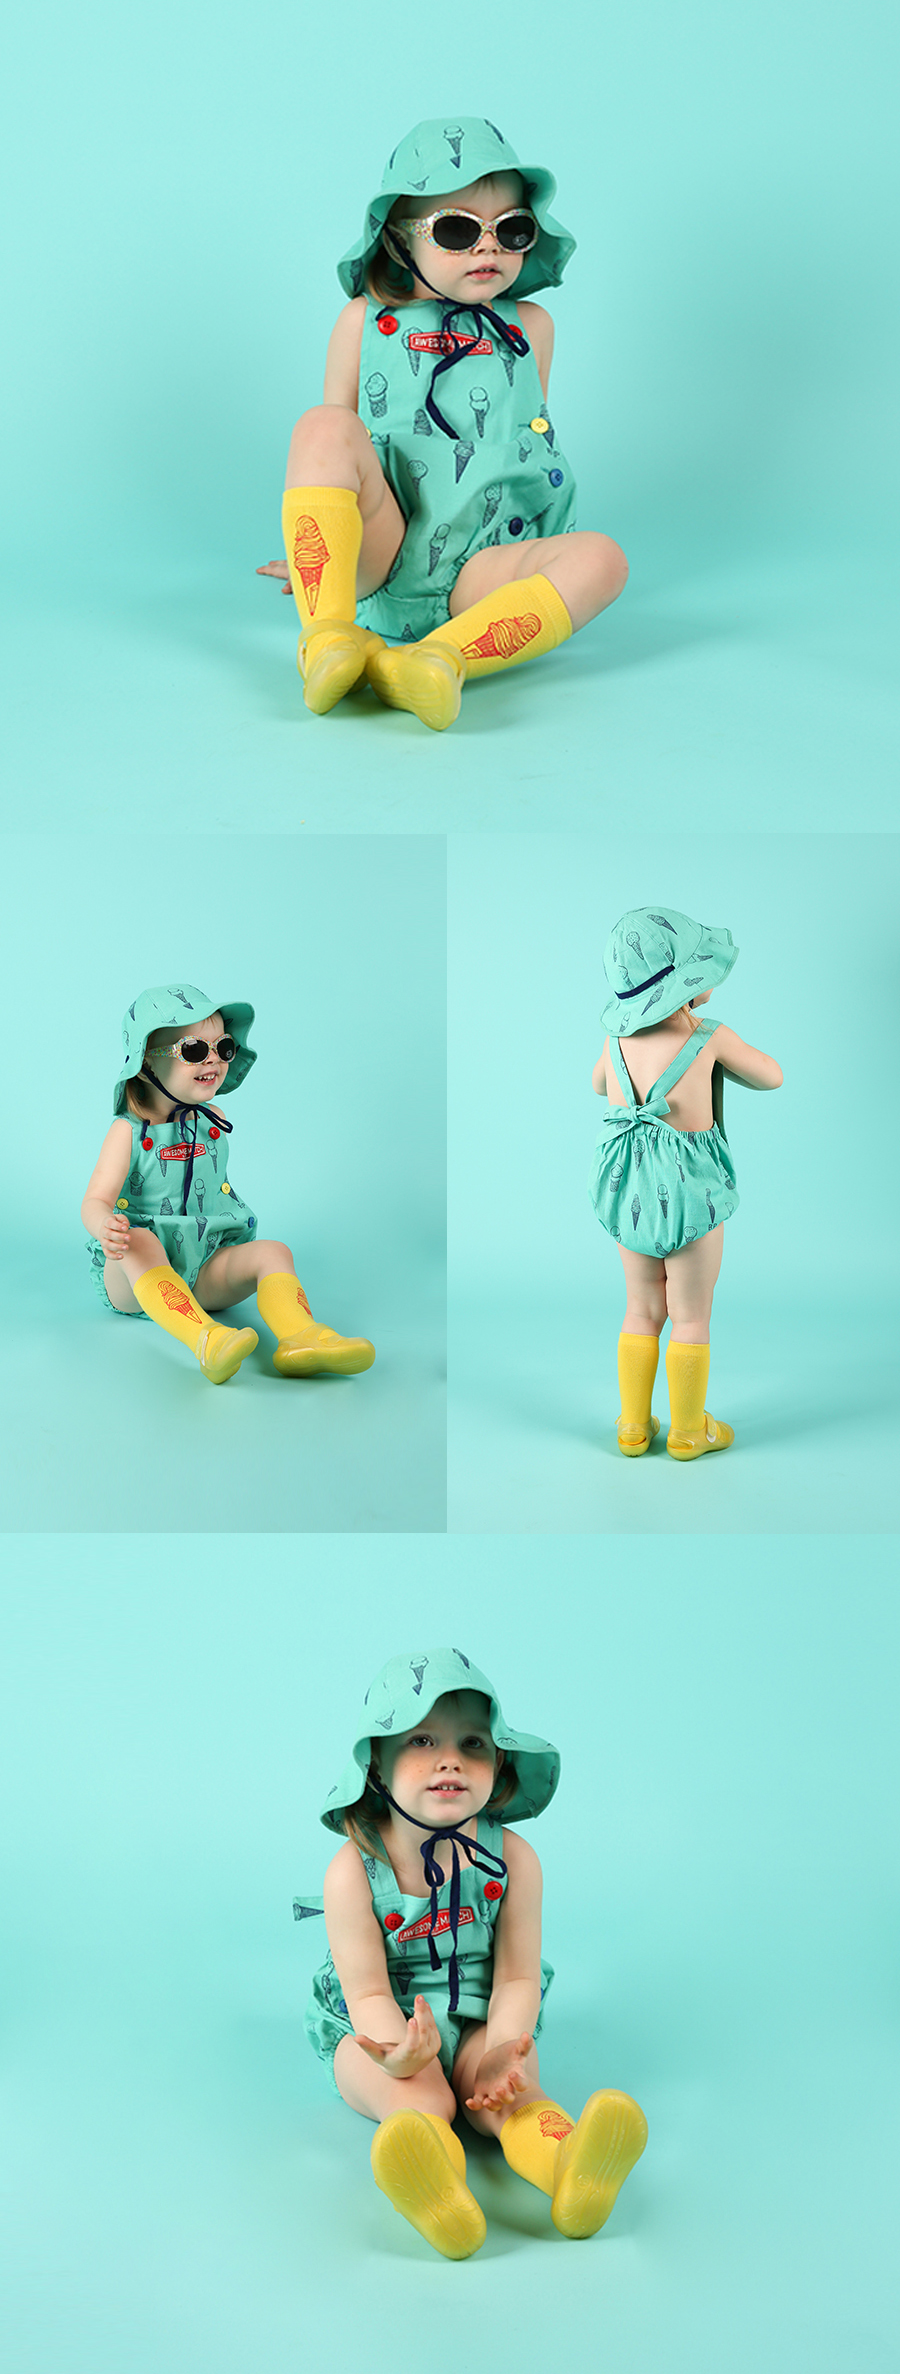 Multi ice cream cone baby playsuit 상세 이미지